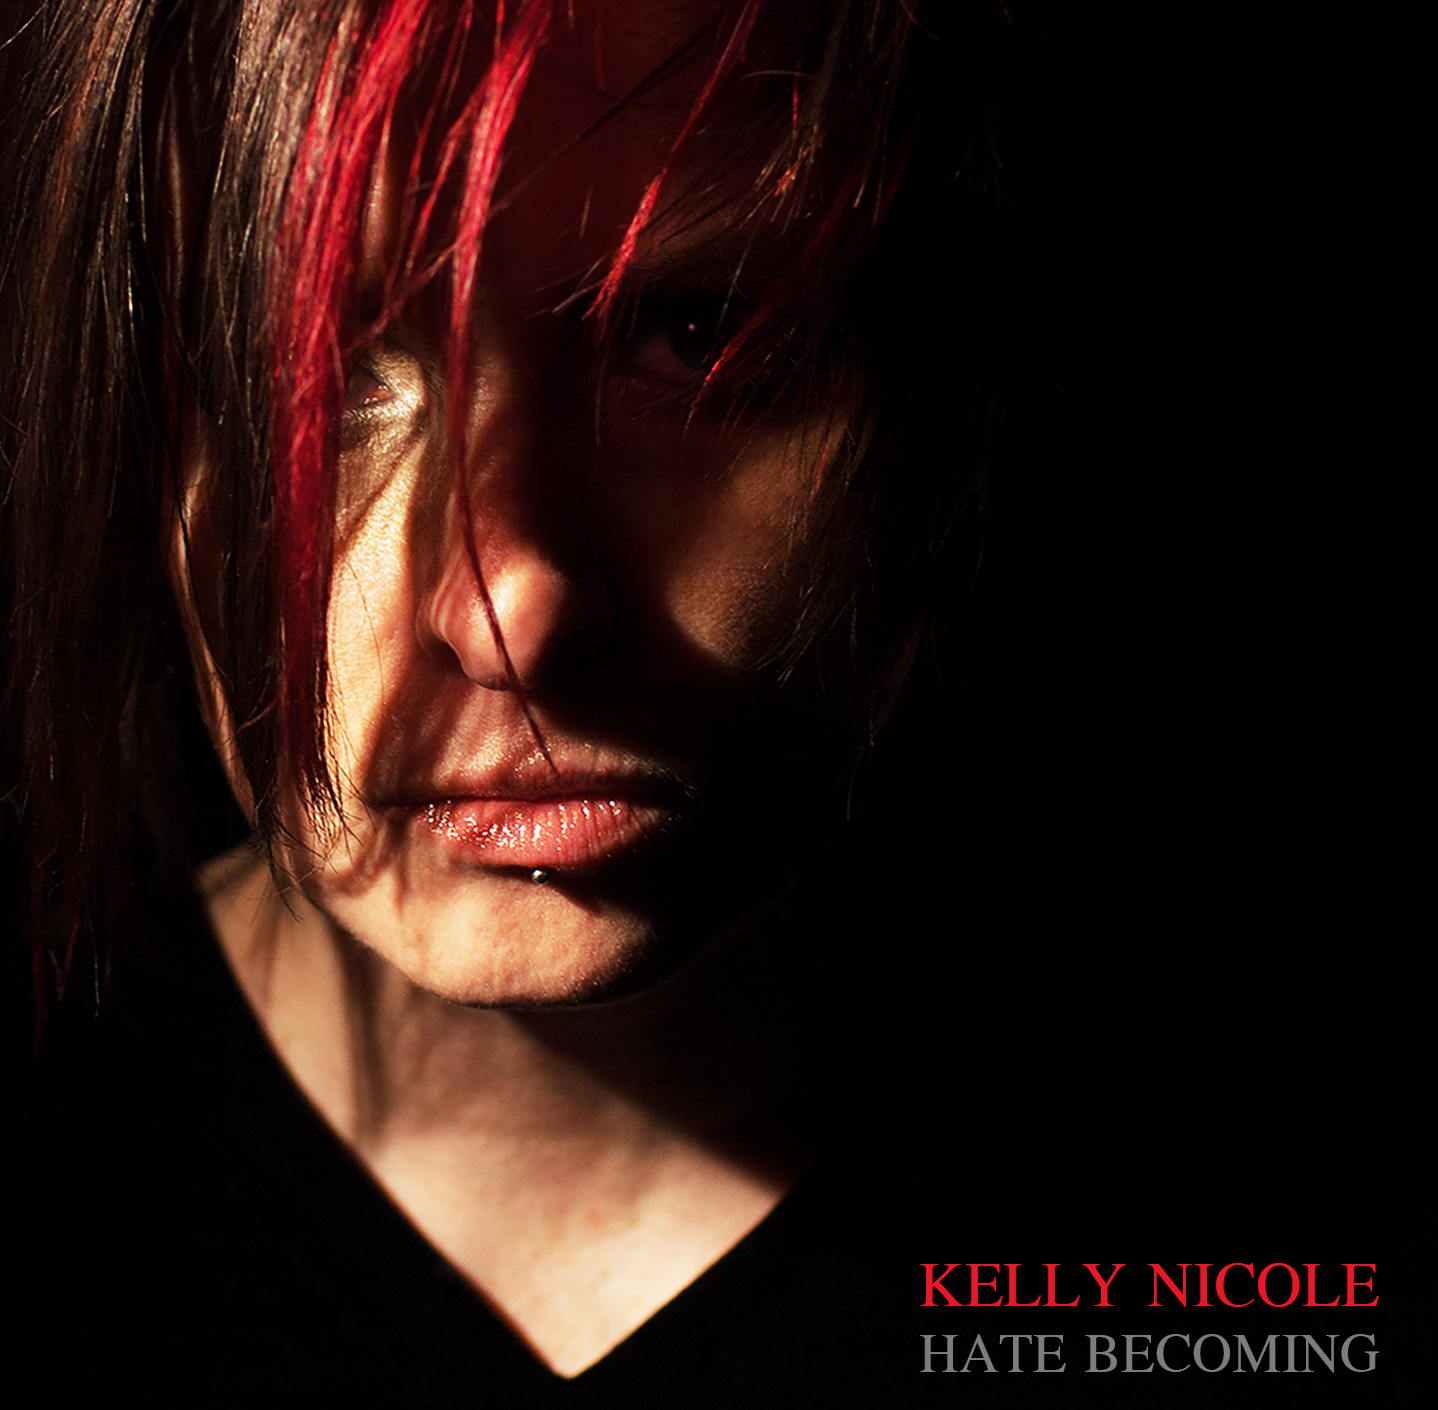 Kelly Nicole Hate Becoming Album Cover.jpg